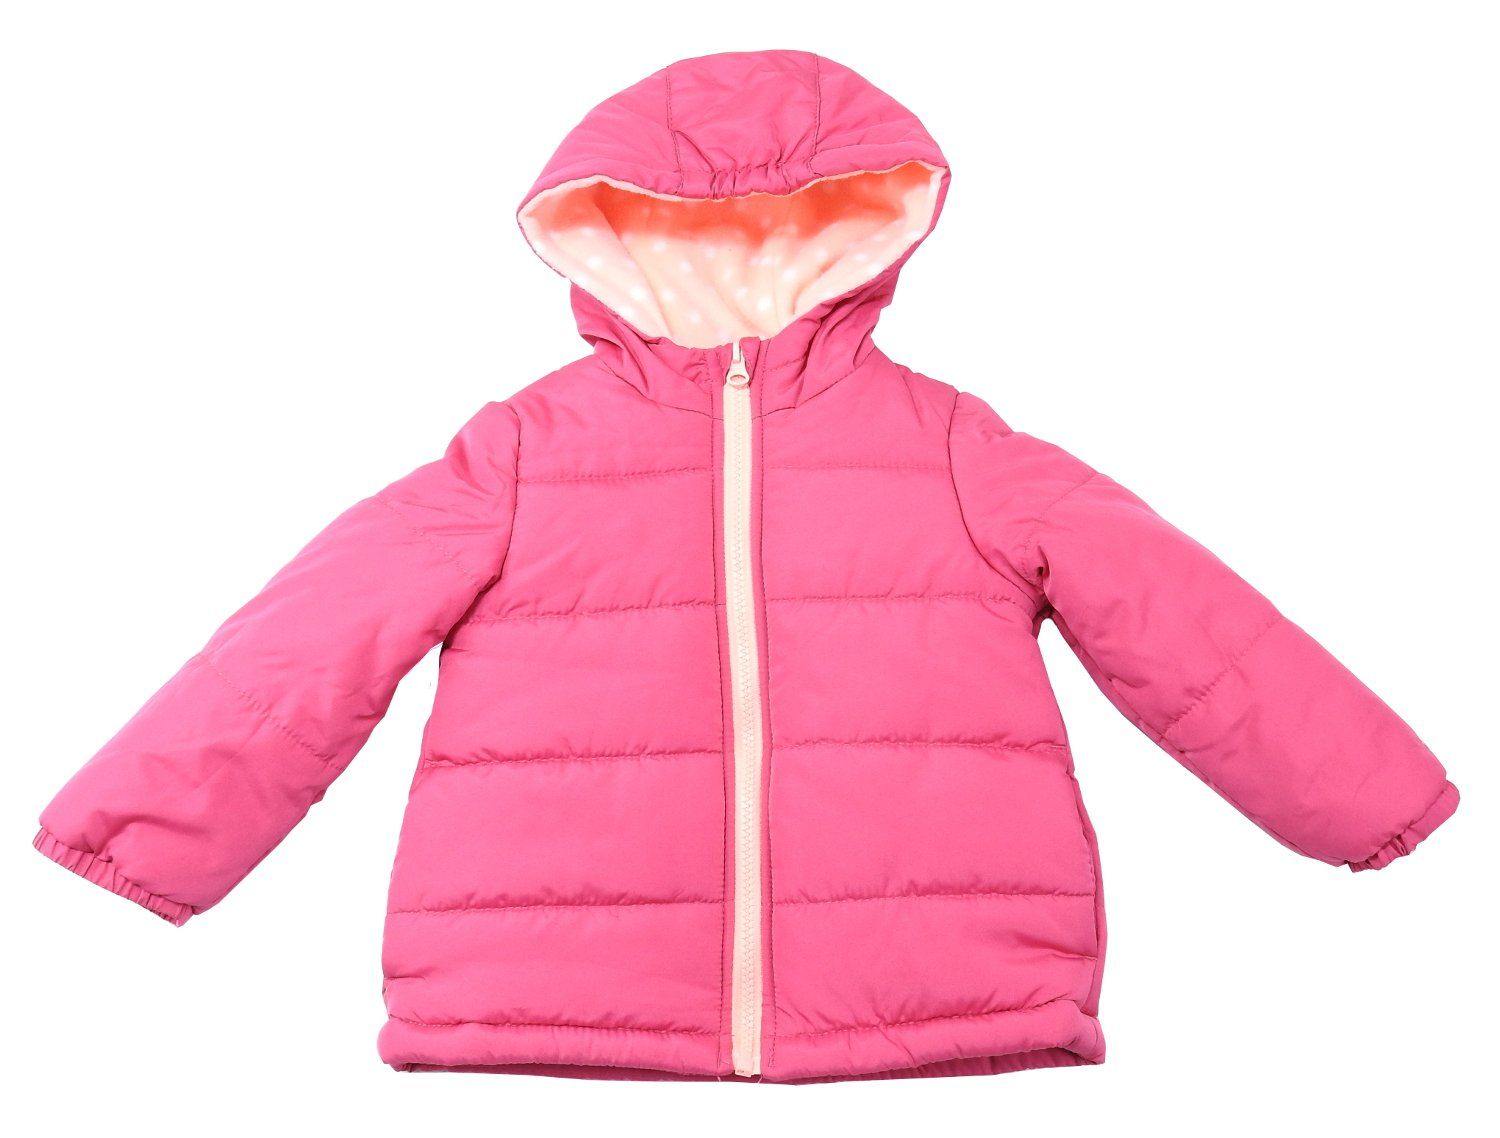 Carter's Baby Girls Size 2T Full Zip Hooded Jacket, Pink. Carter's Baby Girls Full Zip Hooded Jacket. Size: 2T. Color: Pink. Material: 100%-Polyester. Care: Machine Wash Cold W/Like Colors, Tumble Dry Low.